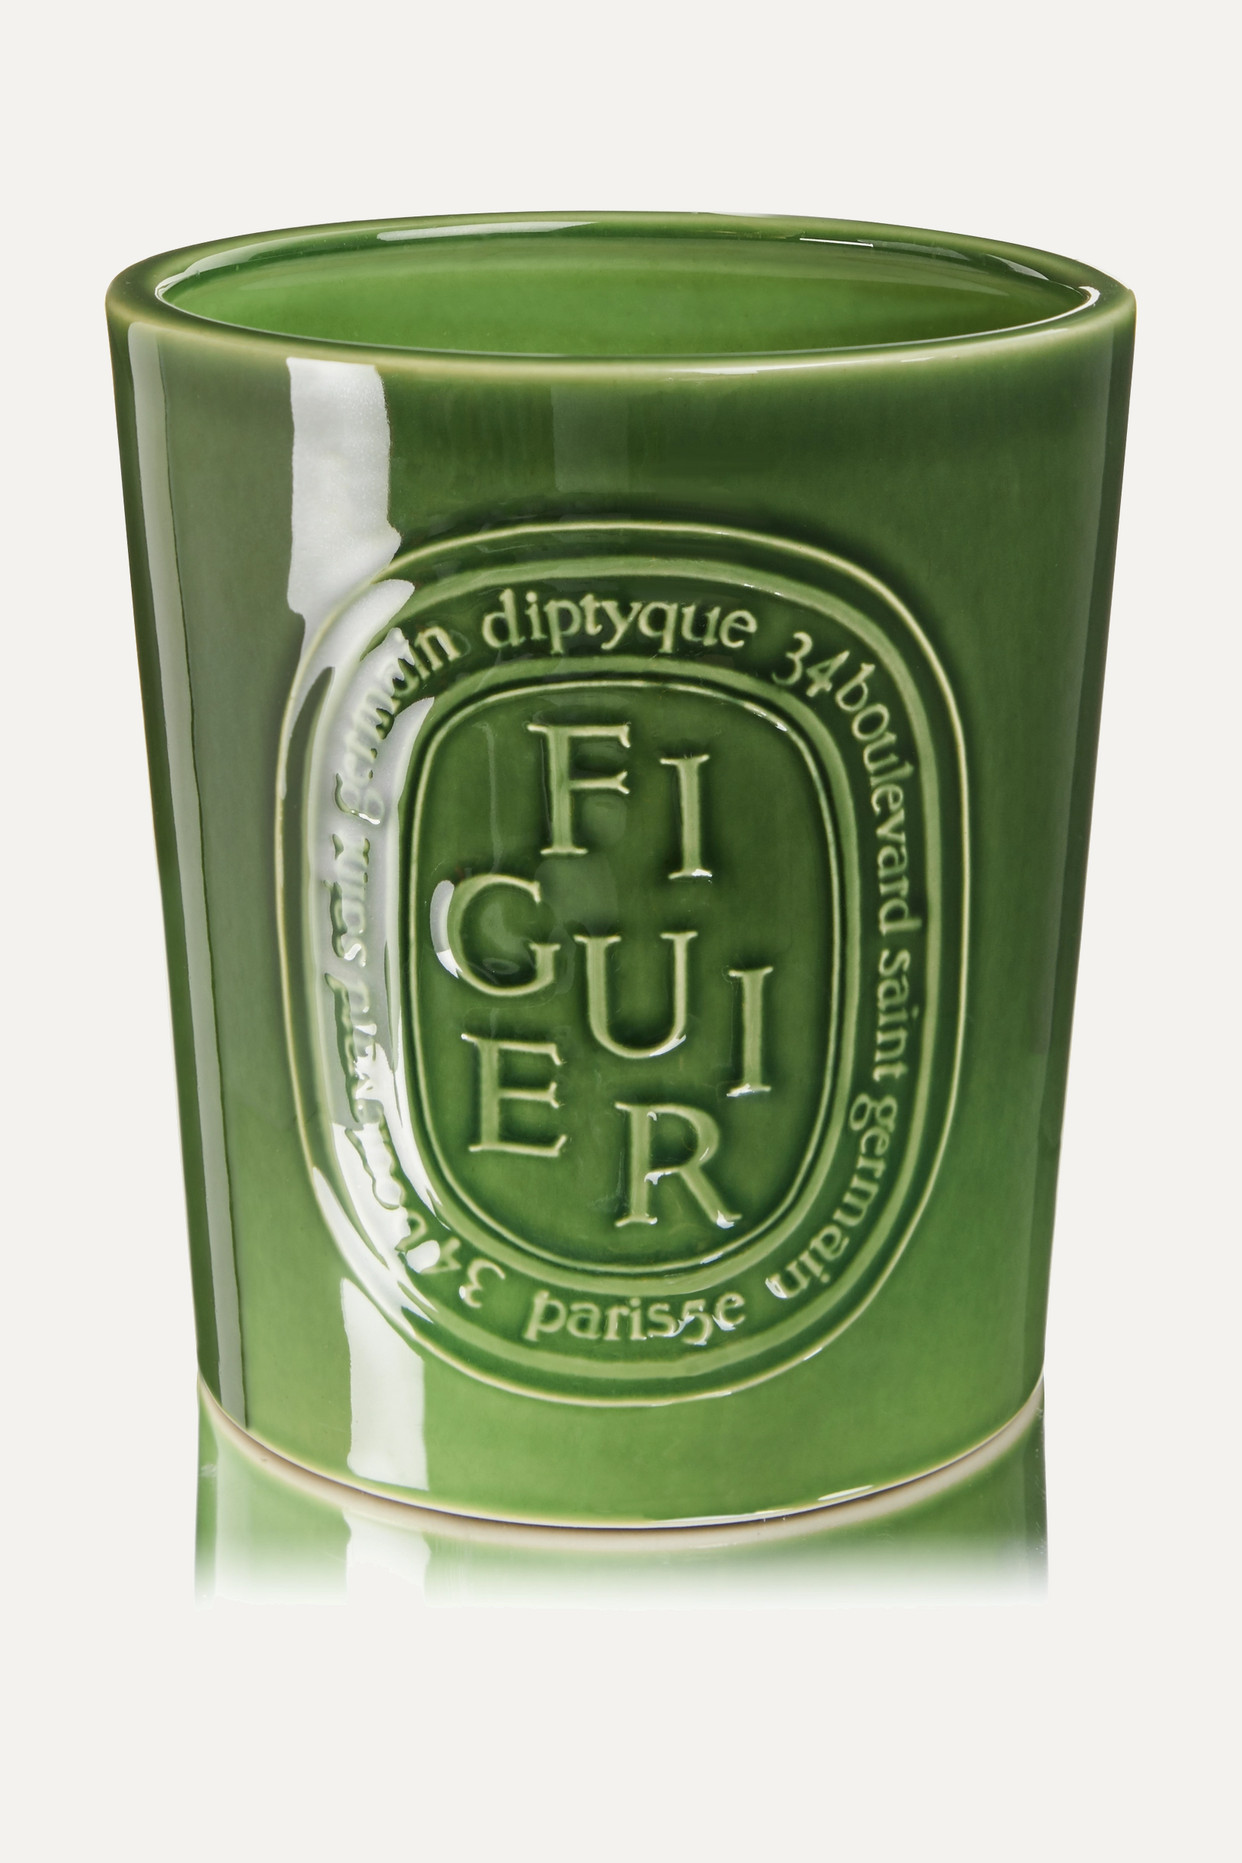 DIPTYQUE - Figuier Scented Candle, 1500g - Green - one size